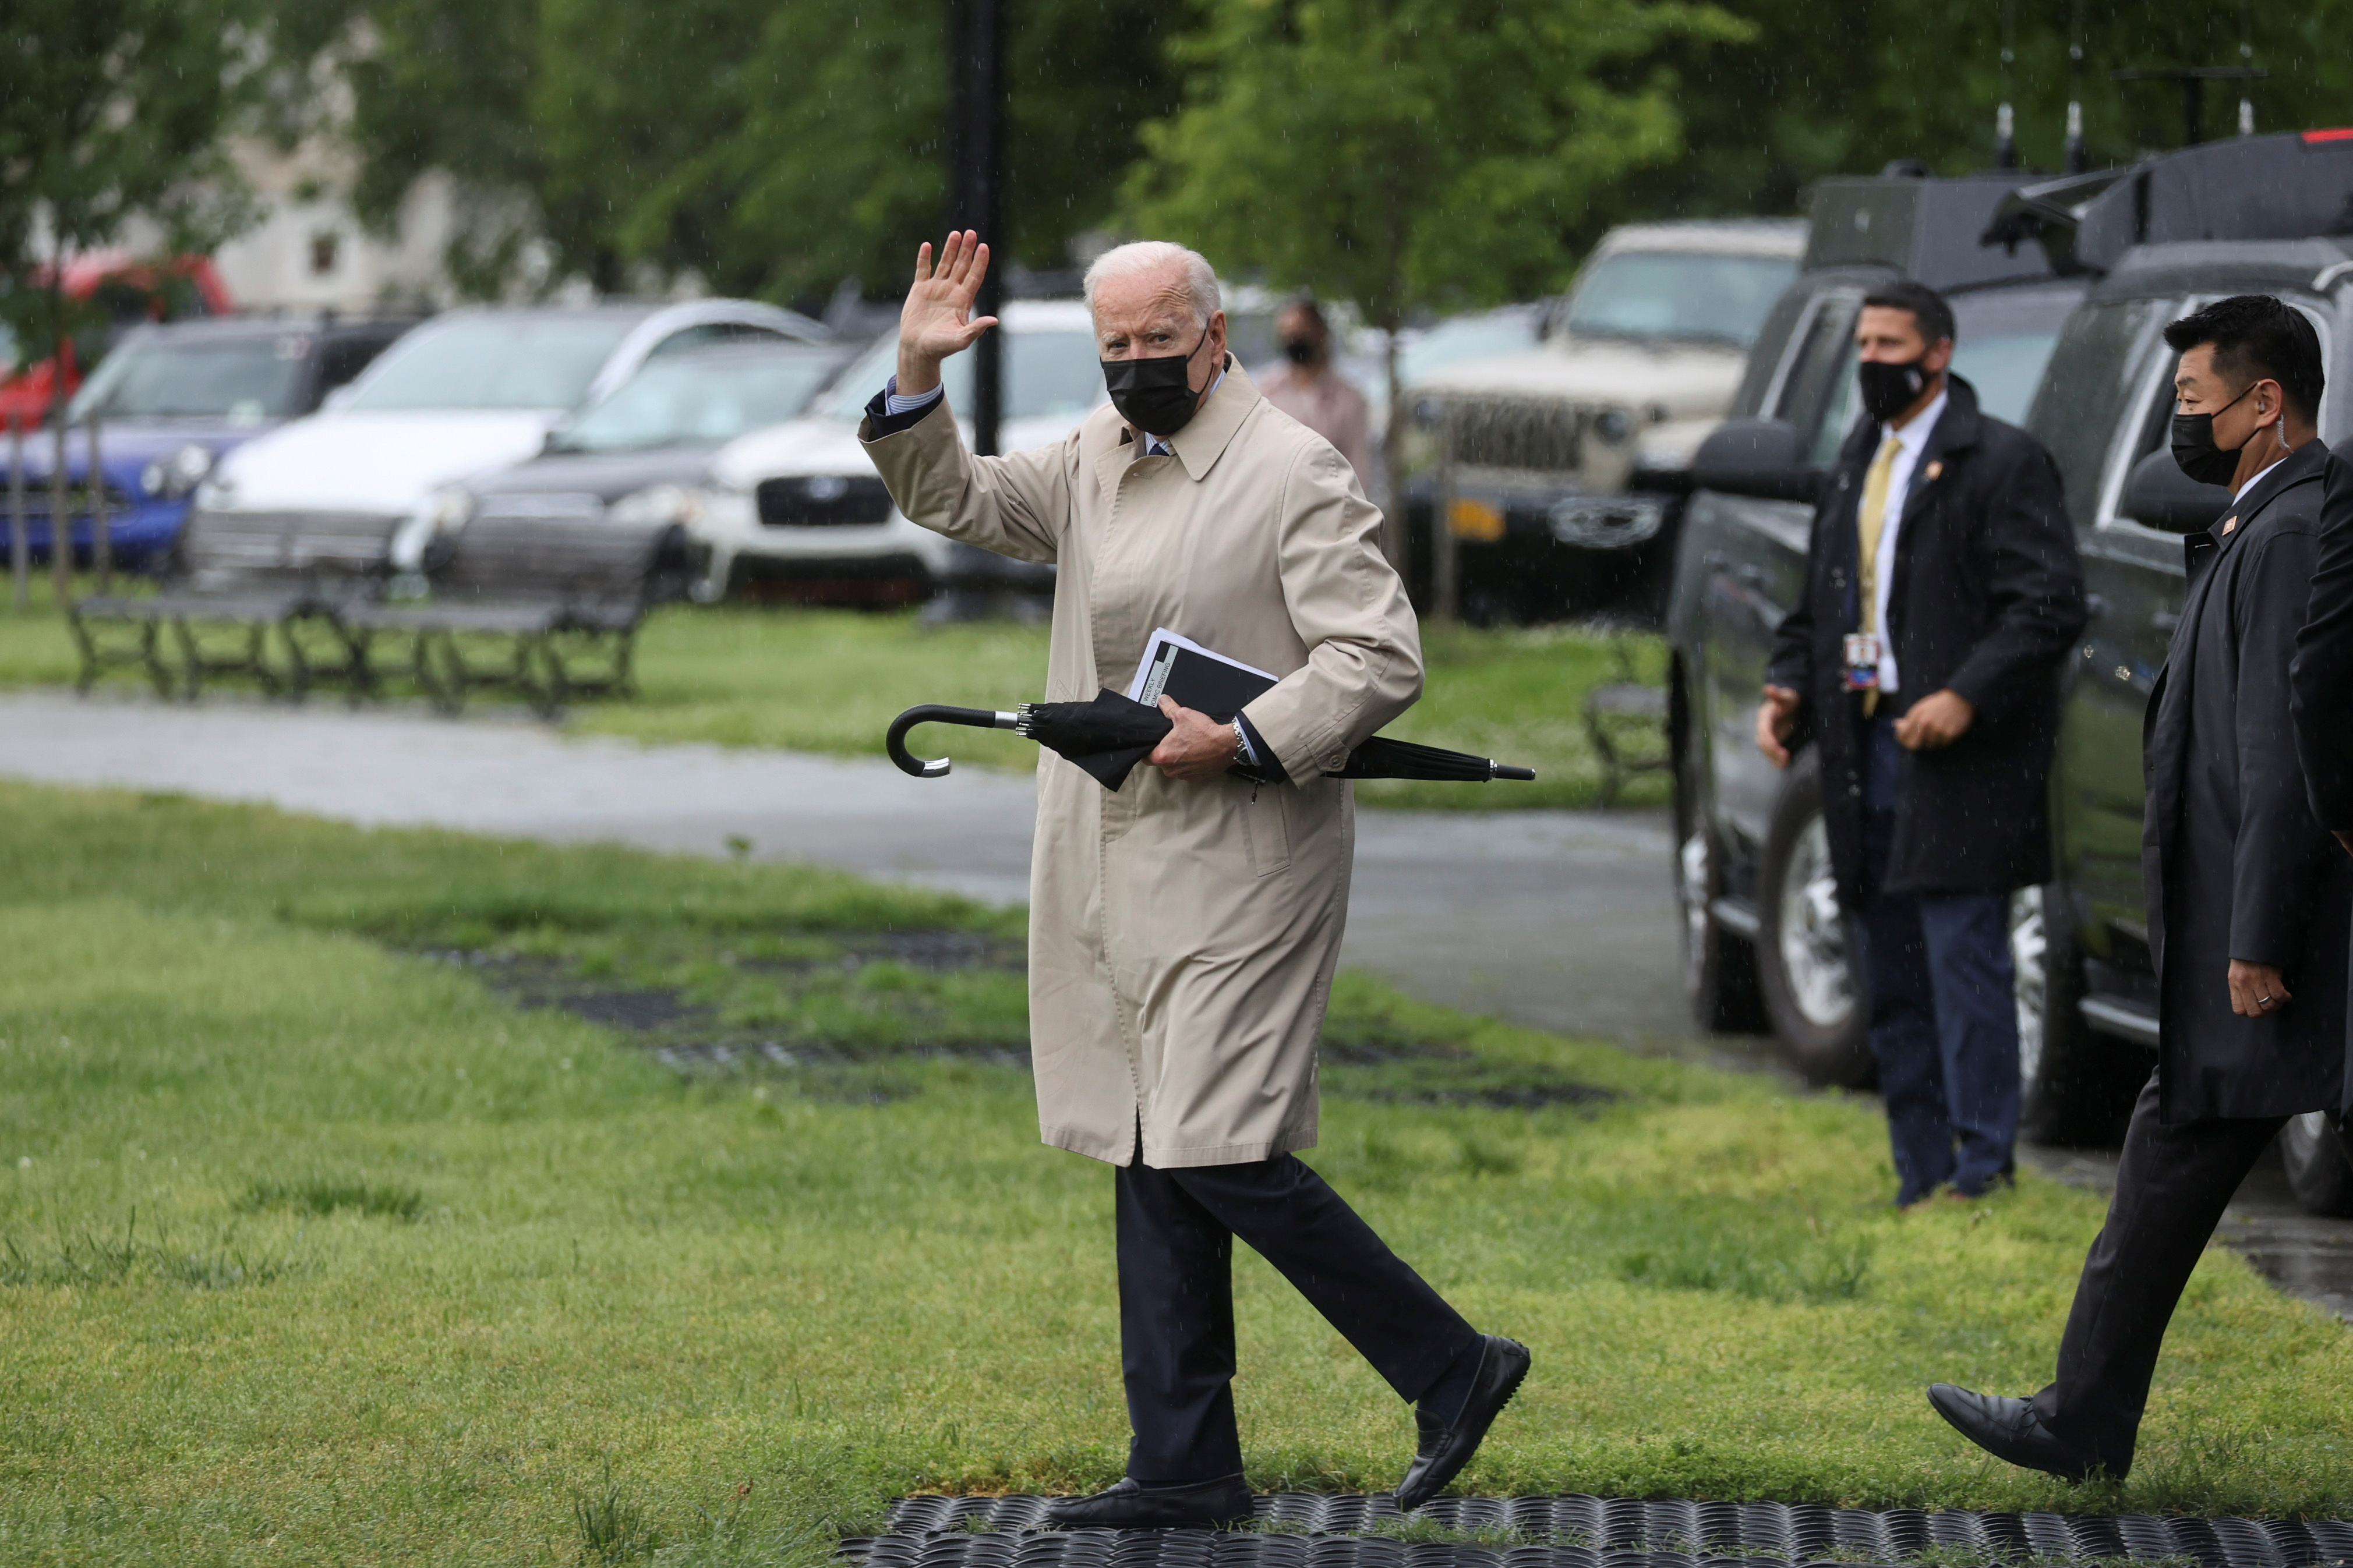 U.S. President Joe Biden waves before boarding the Marine One helicopter for a planned weekend at Camp David, from the Ellipse at the White House in Washington, U.S., May 7, 2021.  REUTERS/Jonathan Ernst